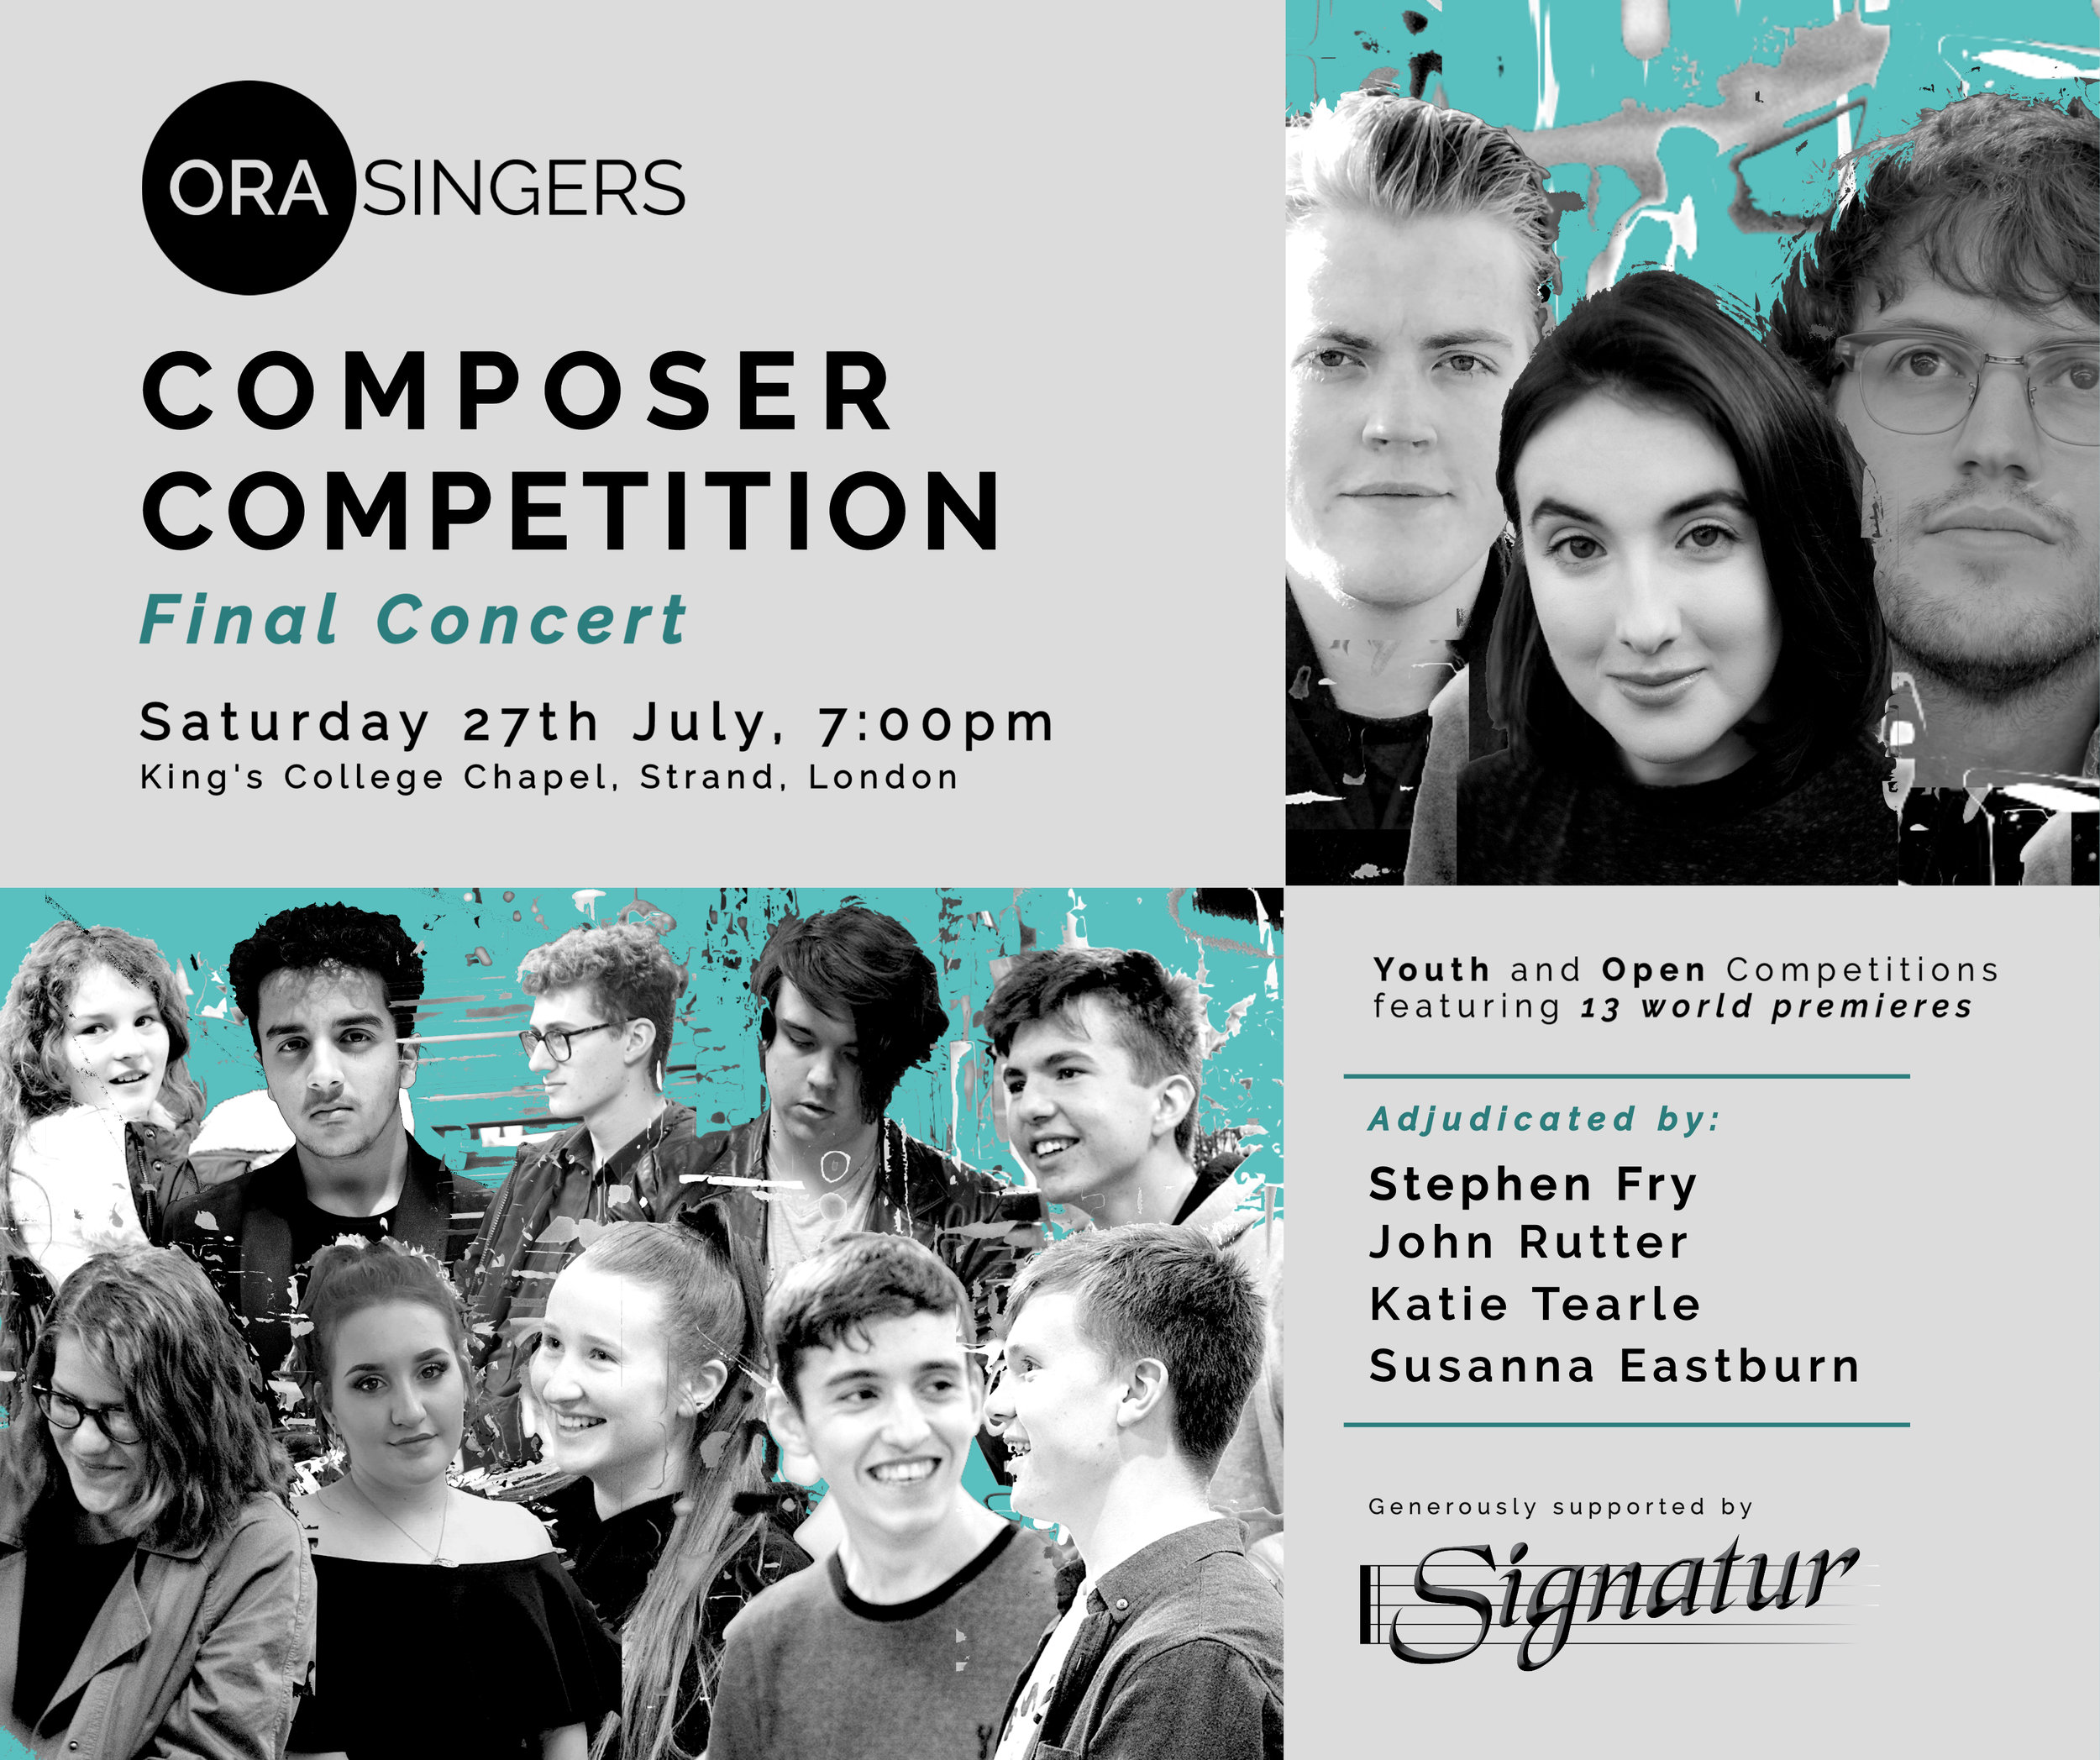 ORA Singers — Stephen Fry Chairs Composer Competition Final Concert